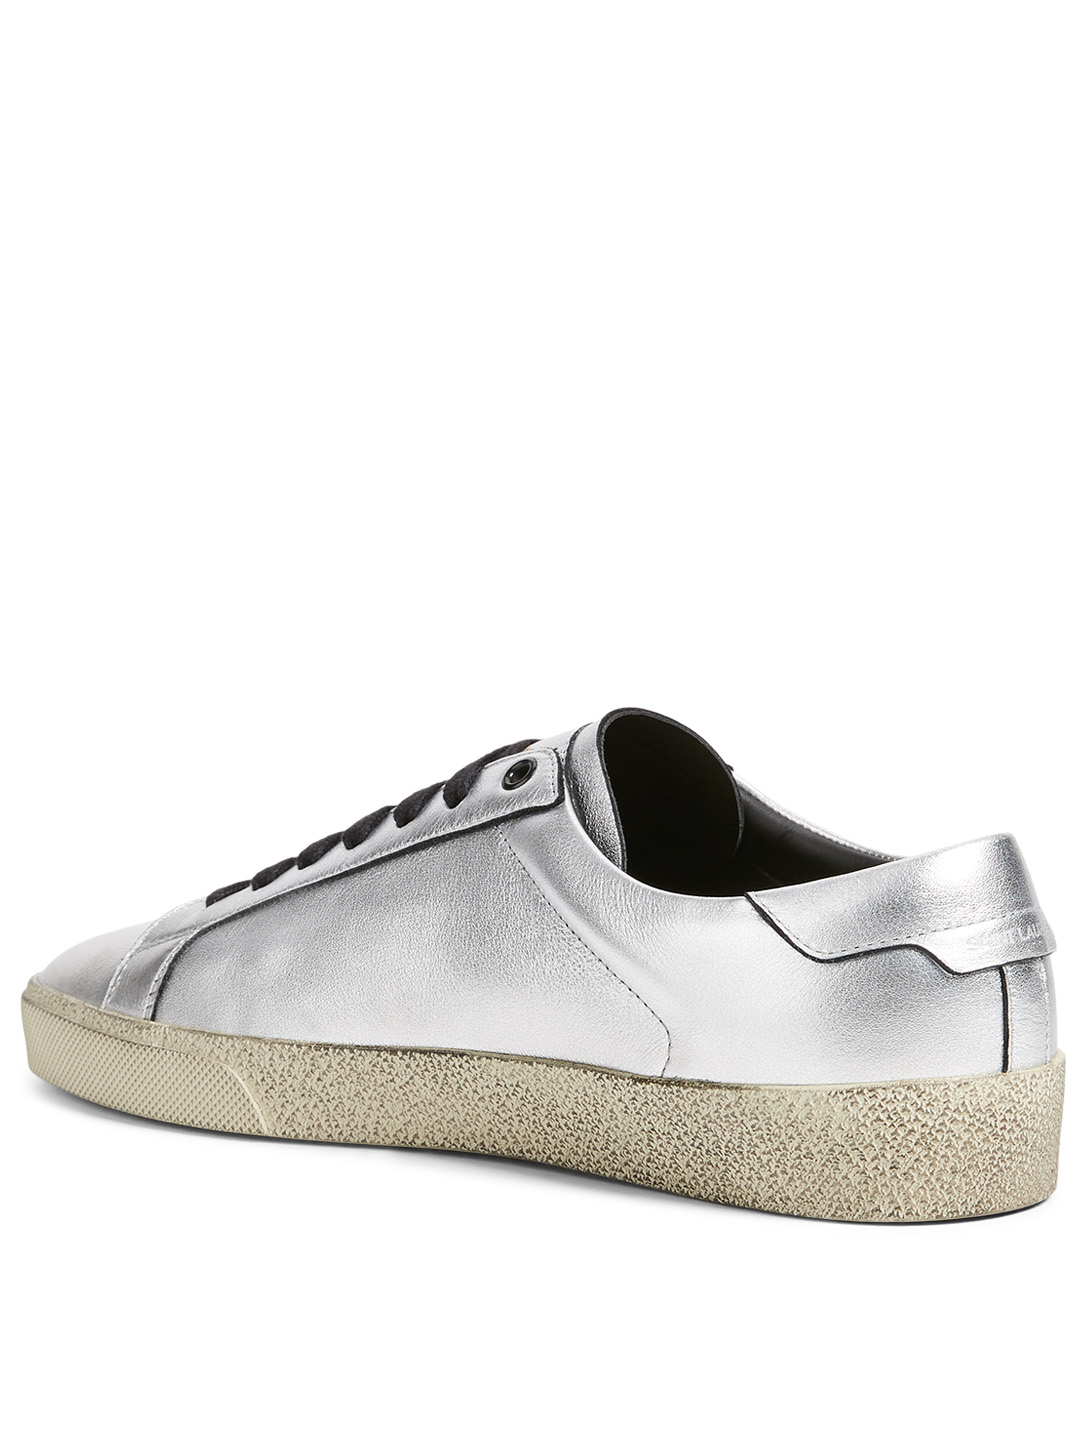 SAINT LAURENT Court Classic SL/06 Metallic Leather Sneakers Men's Metallic